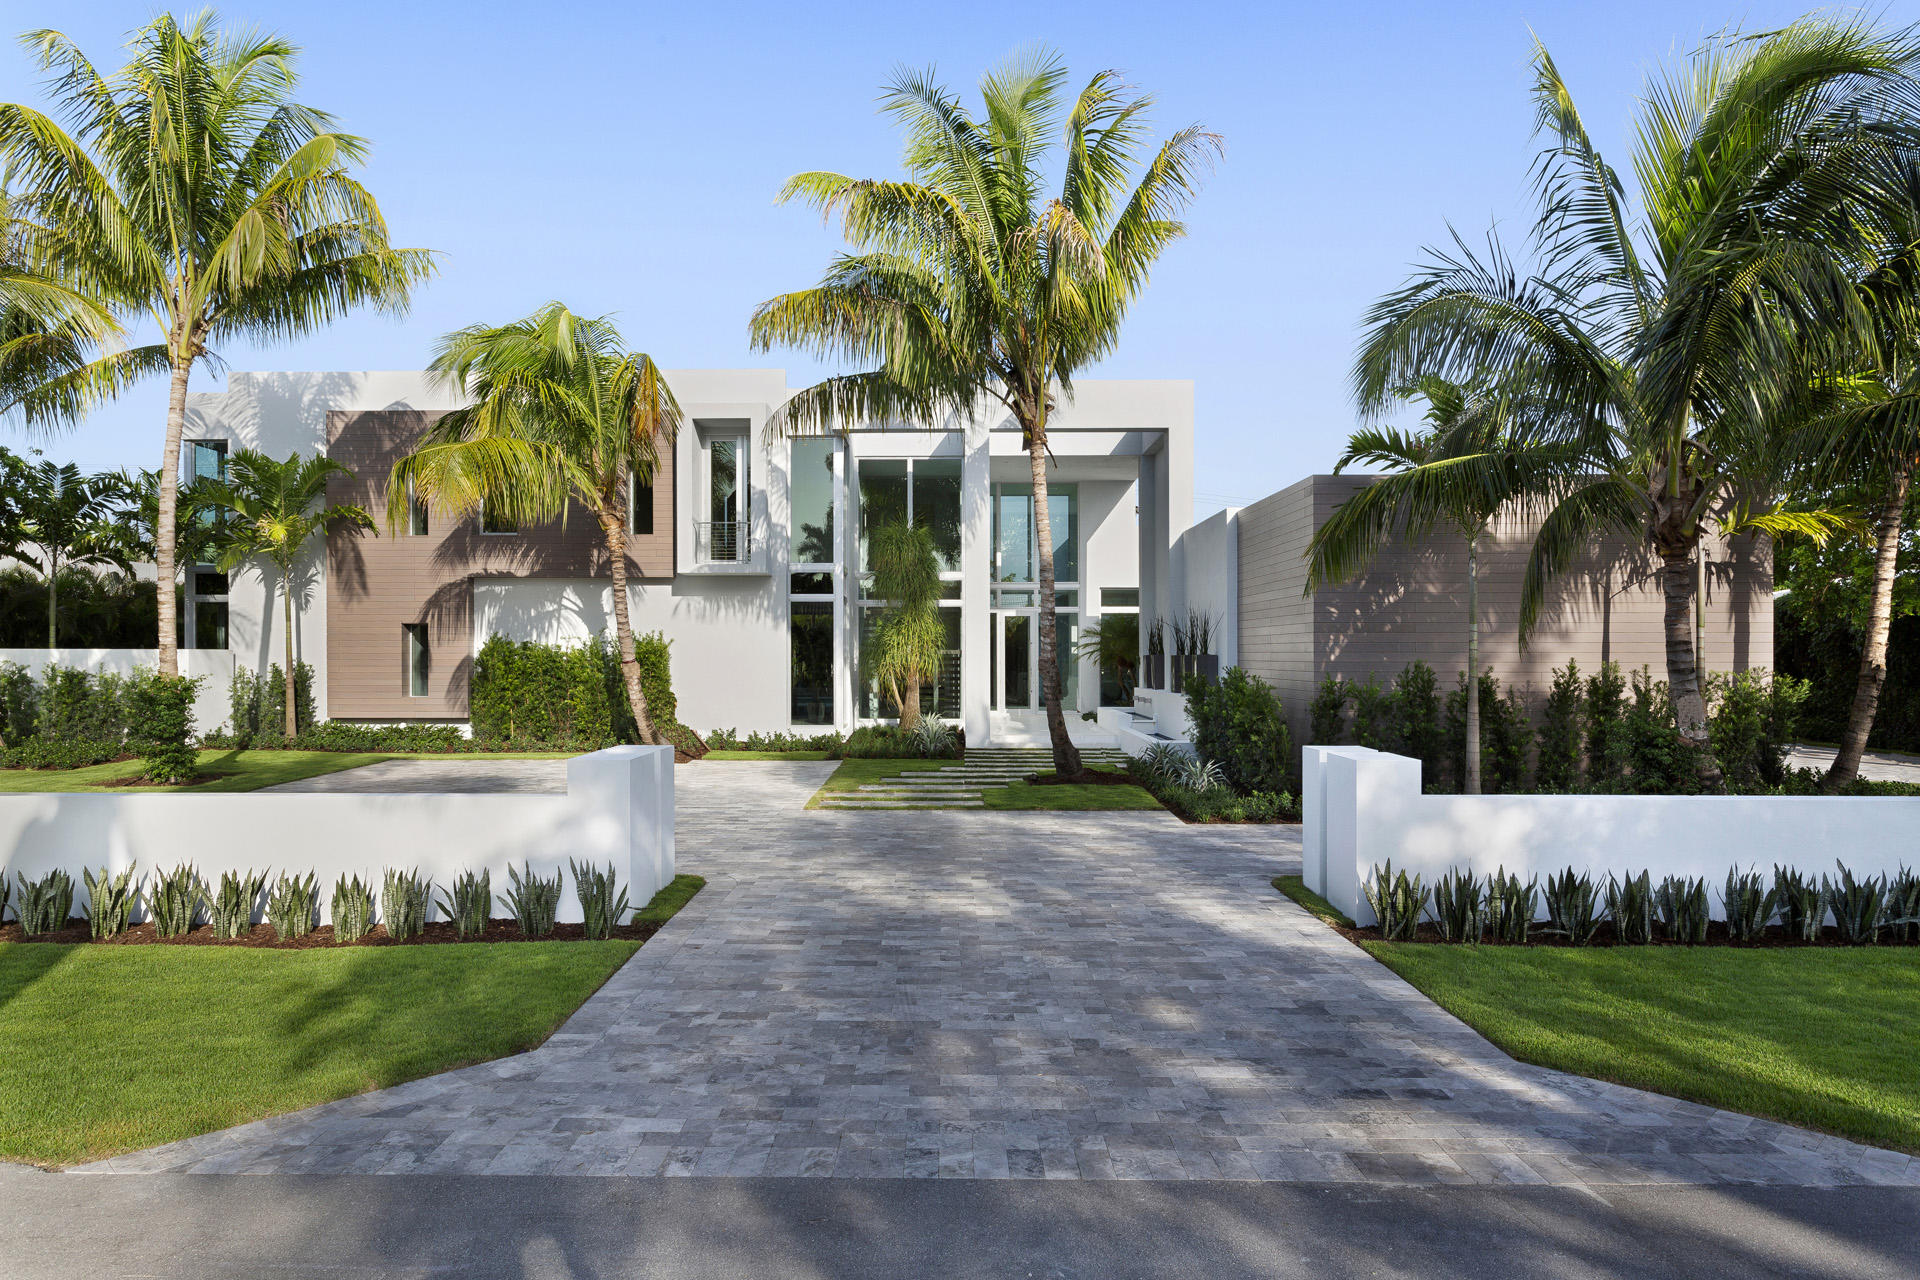 Home for sale in Estate Section Boca Raton Florida